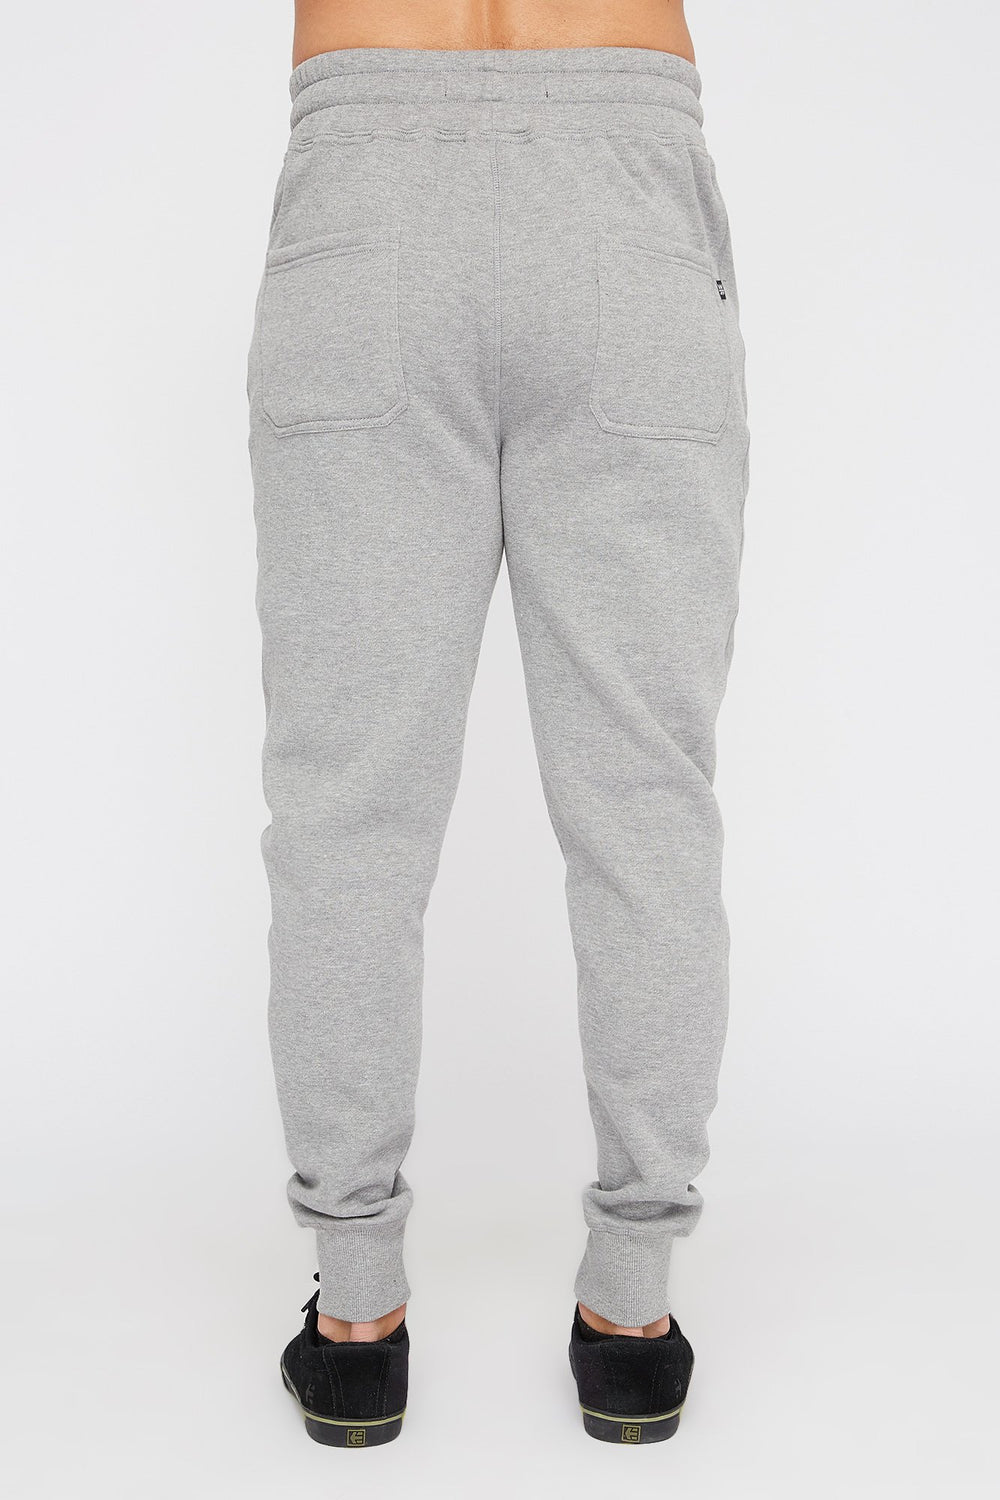 West49 Mens Solid Zip-Up Jogger Heather Grey